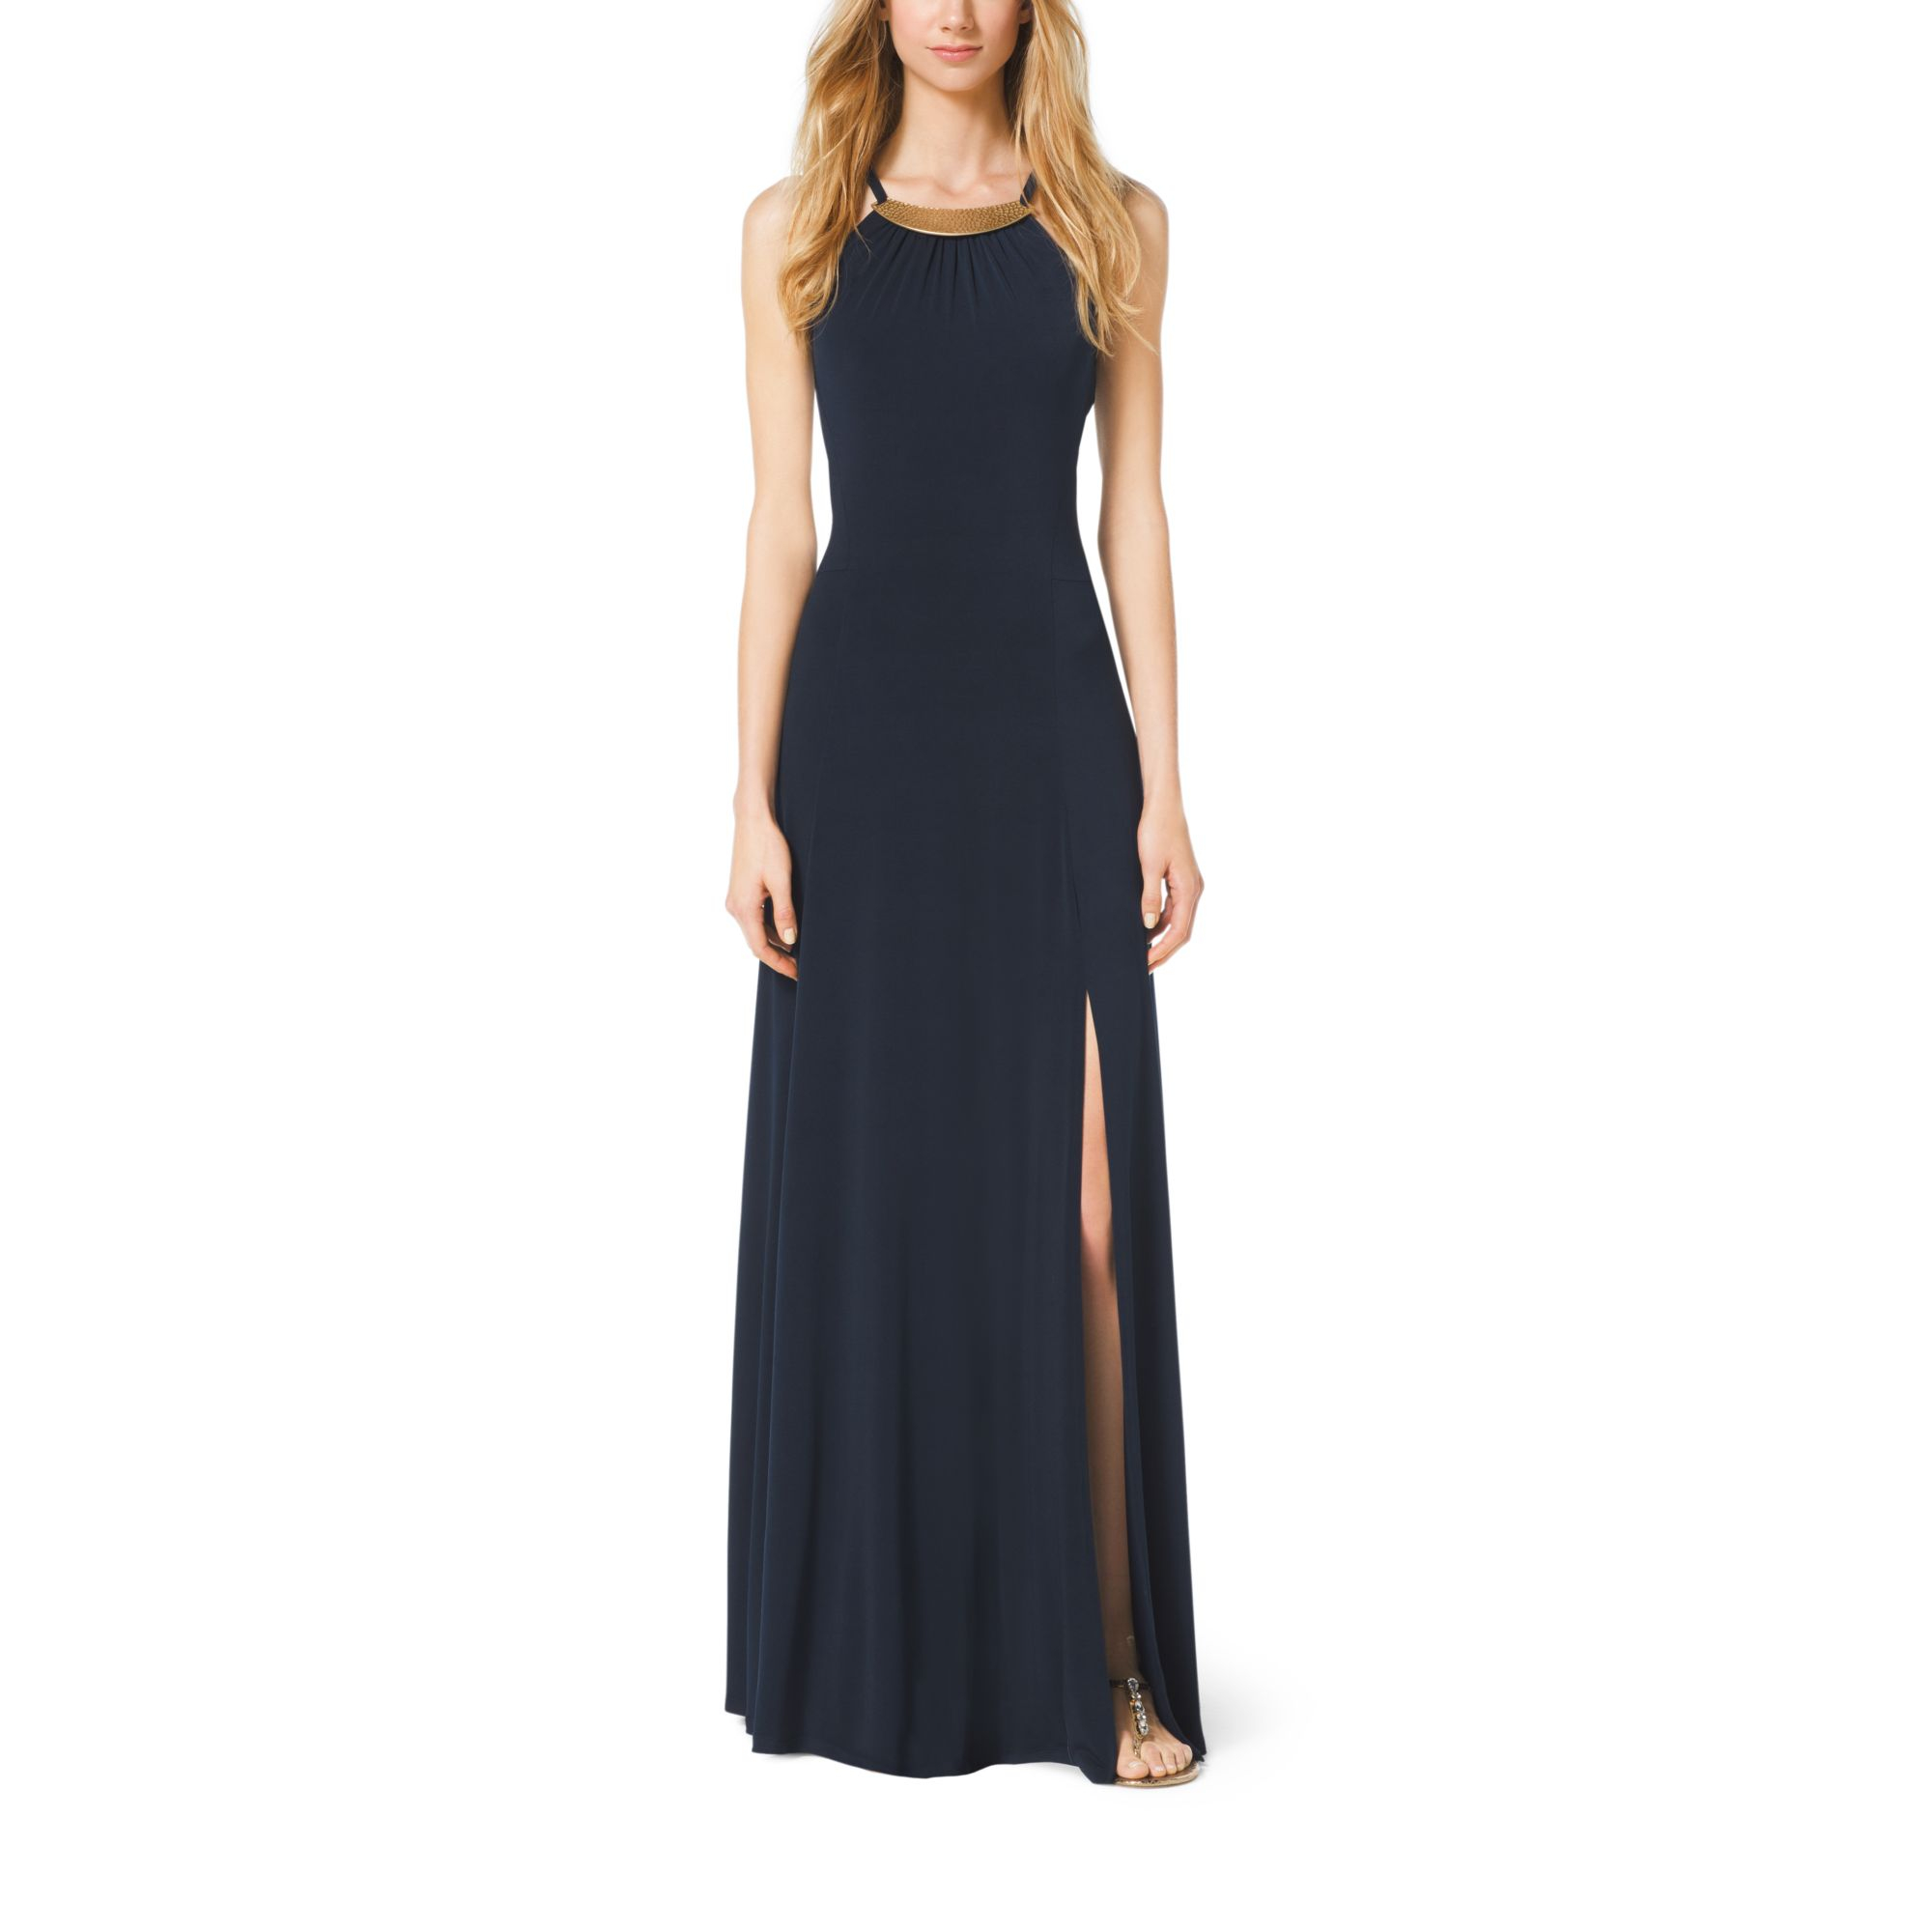 Lyst - Michael Kors Embellished Maxi Dress in Blue